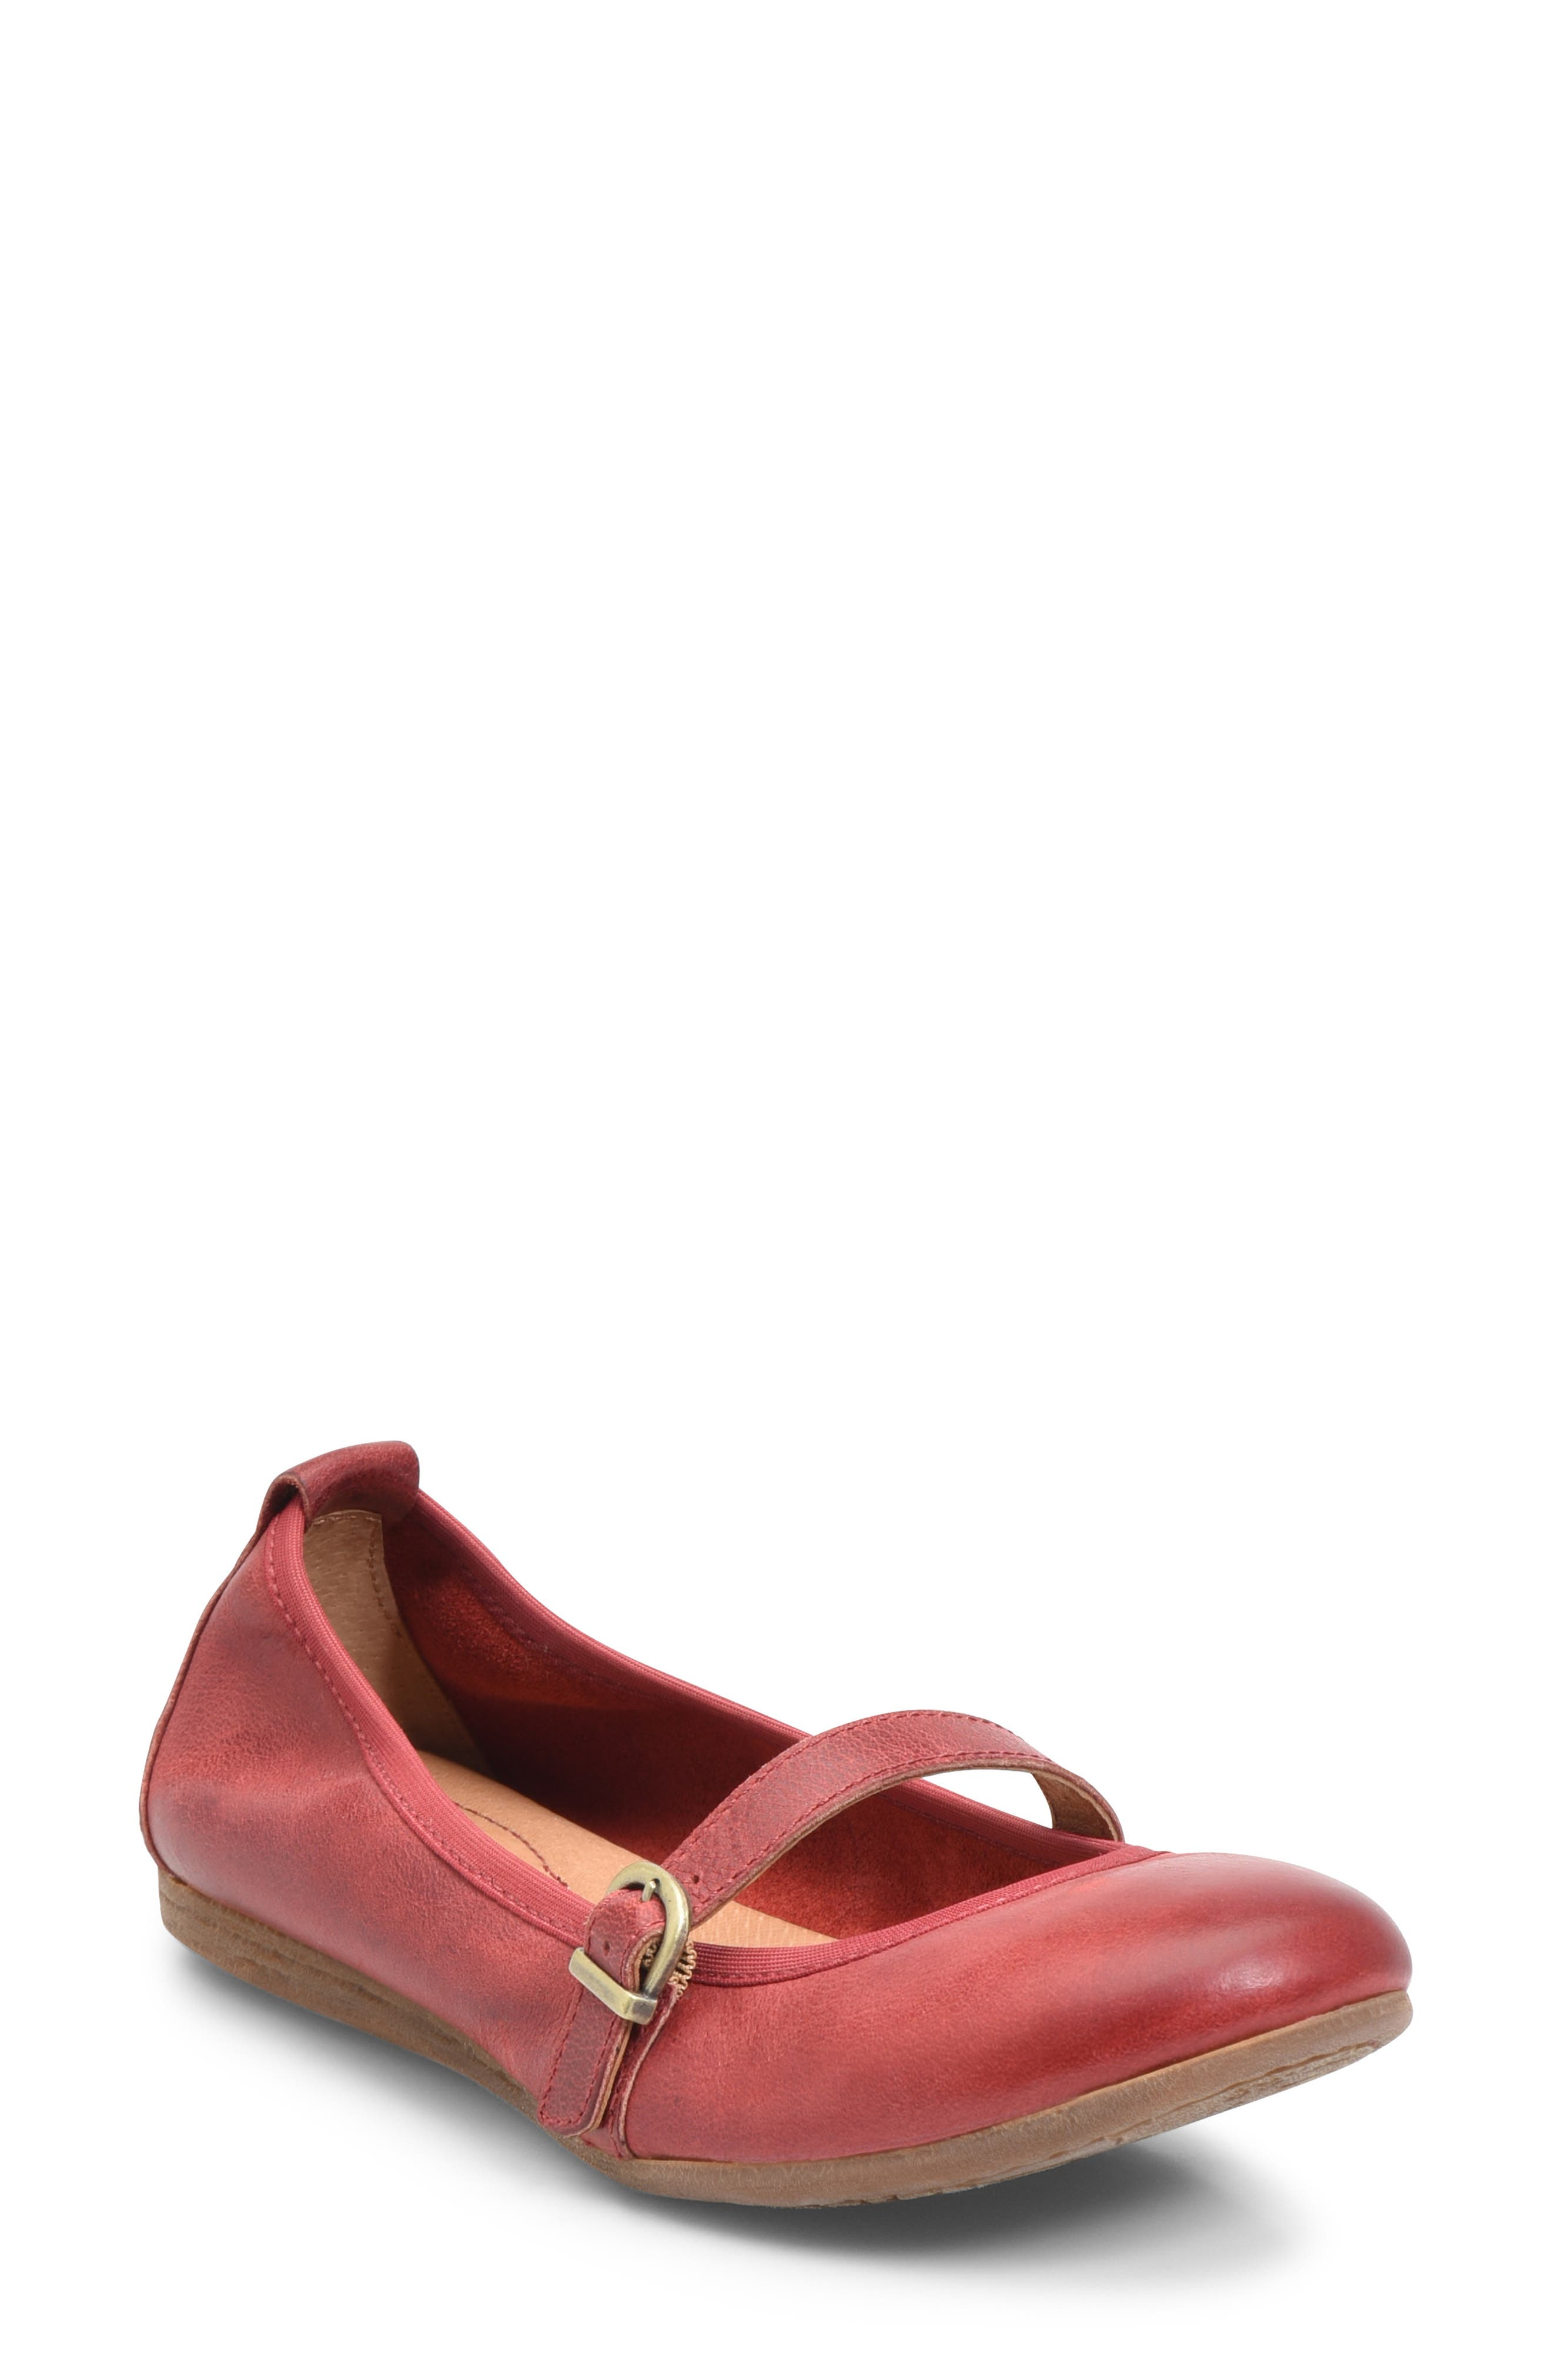 B?rn Curlew Mary Jane Ballet Flat, Red